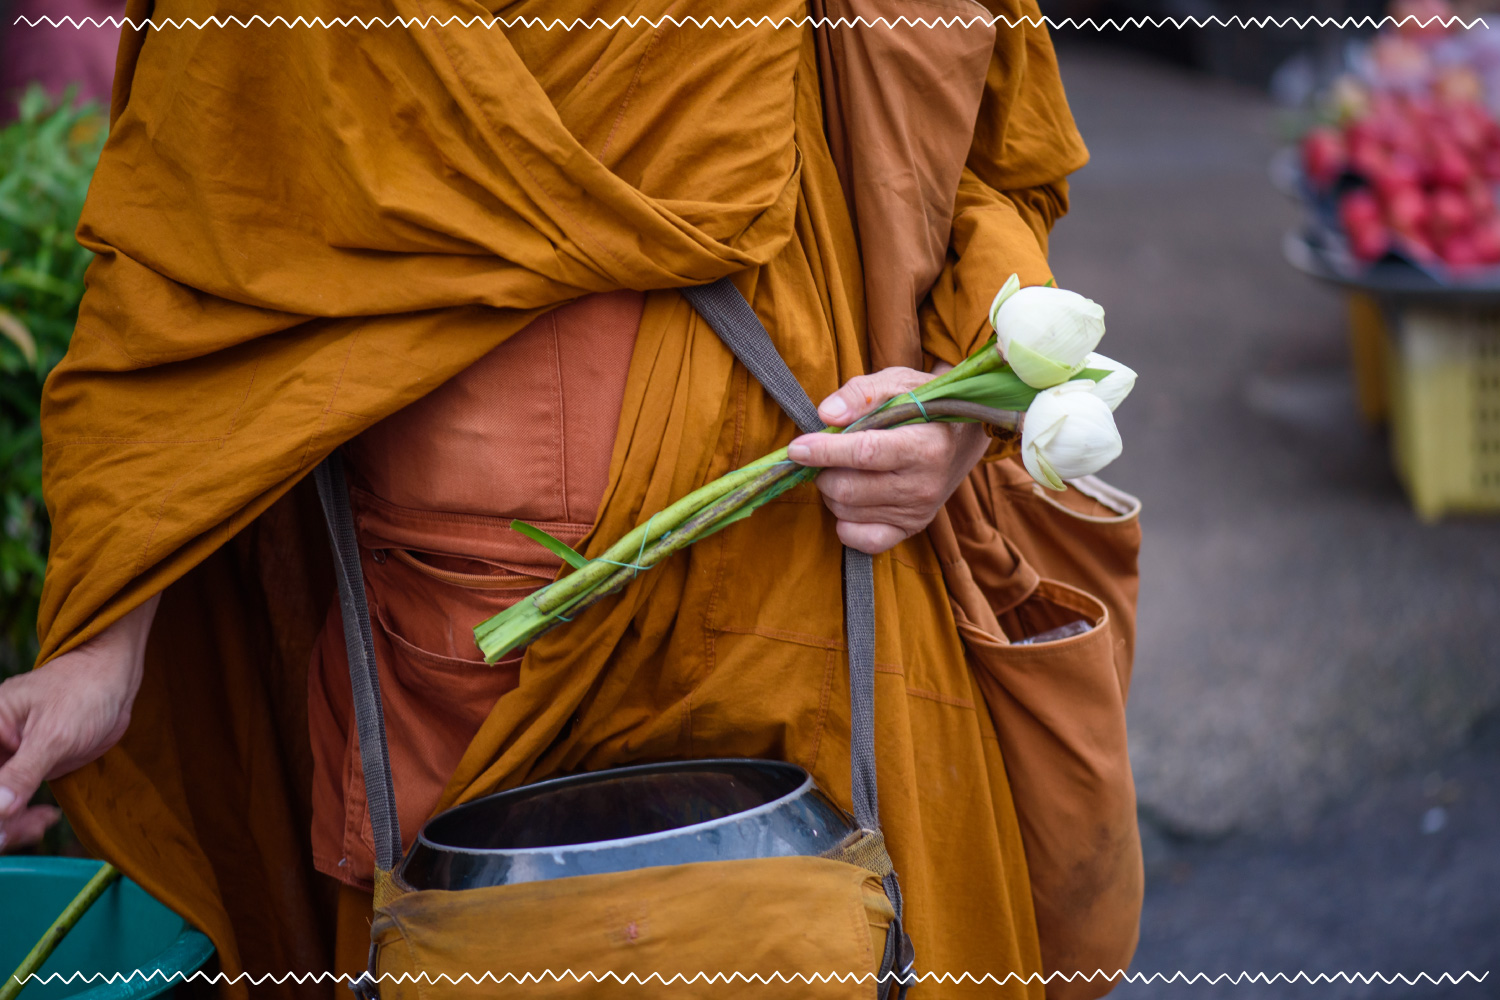 man in monk clothing holding white flowers